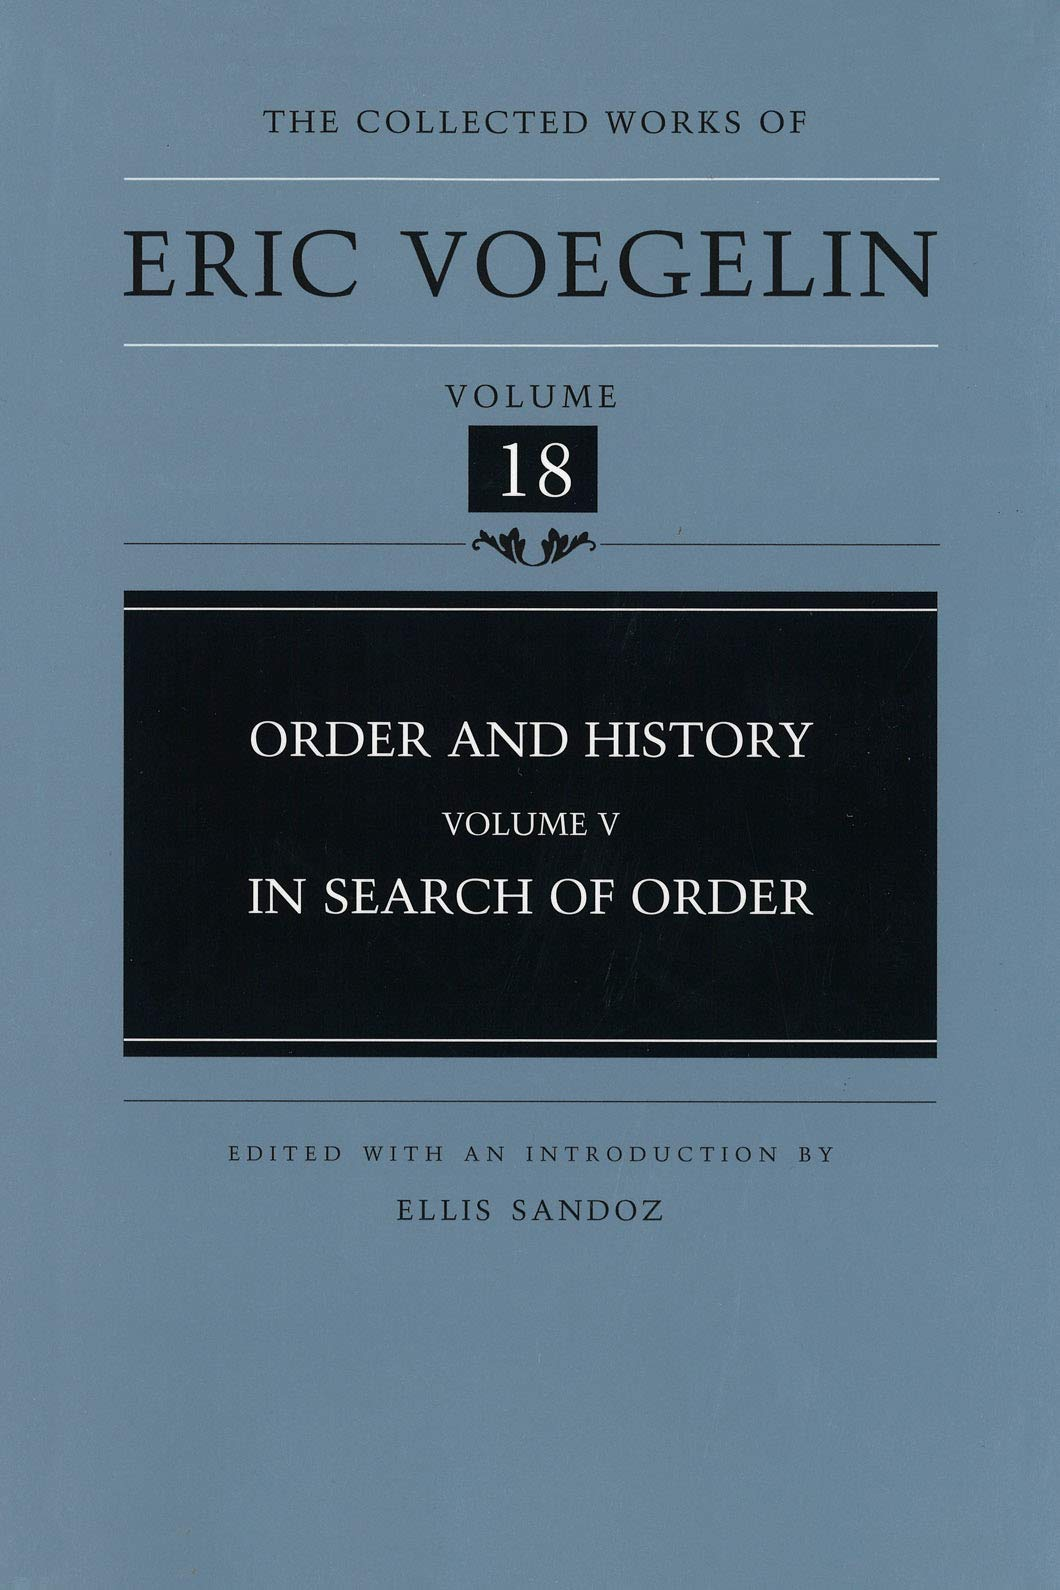 Download Order and History (Volume 5): In Search of Order (Collected Works of Eric Voegelin, Volume 18) PDF